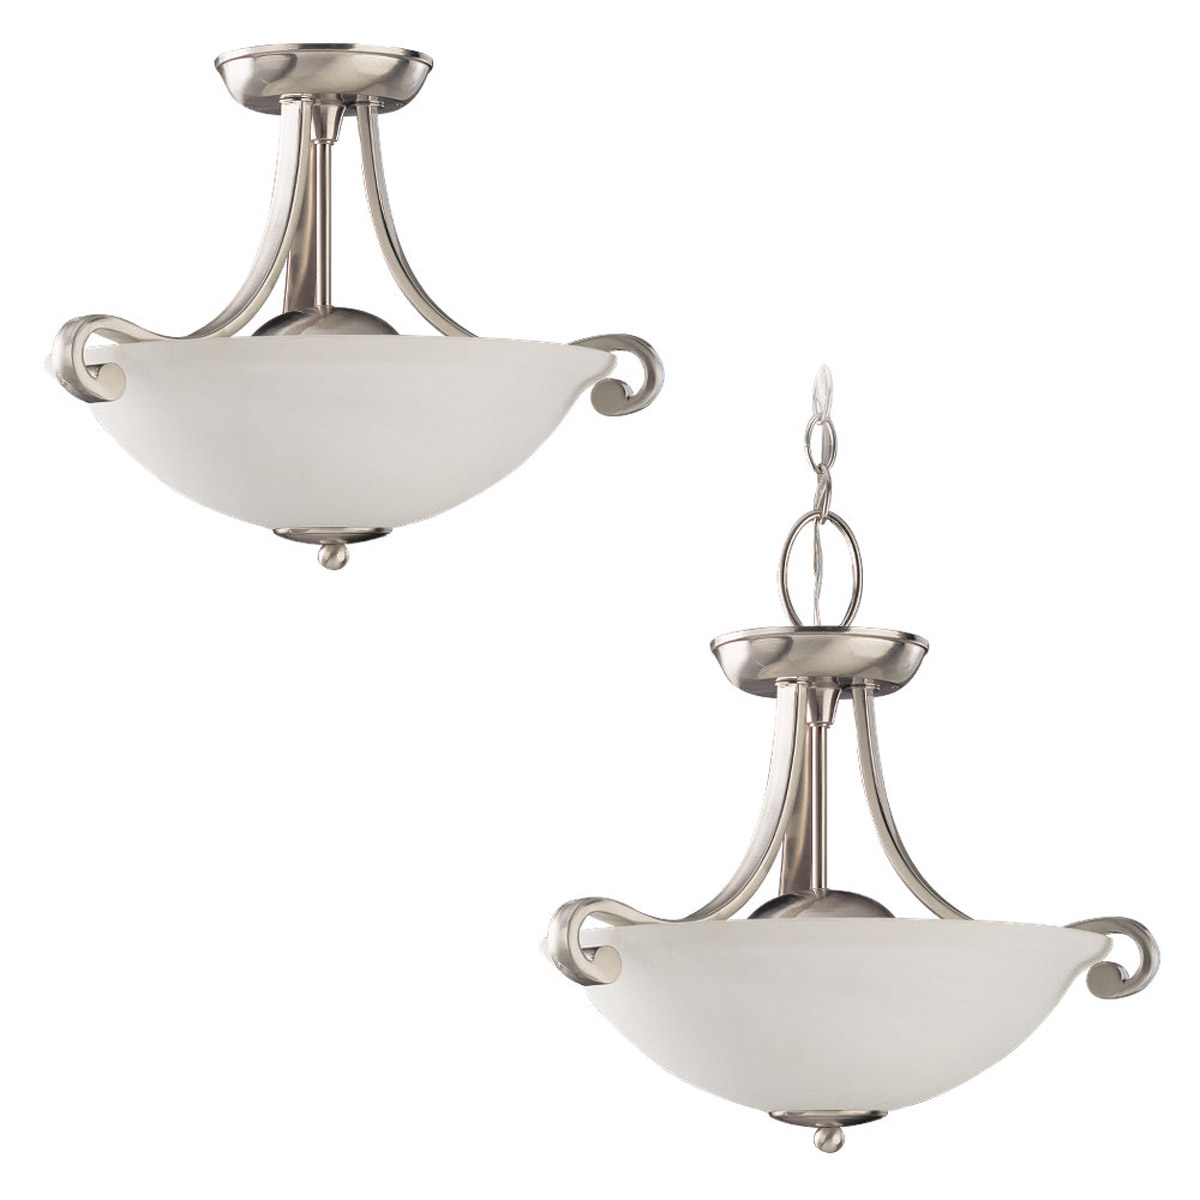 Sea Gull Lighting Serenity 2 Light Pendant Convertible in Brushed Nickel 51190-962